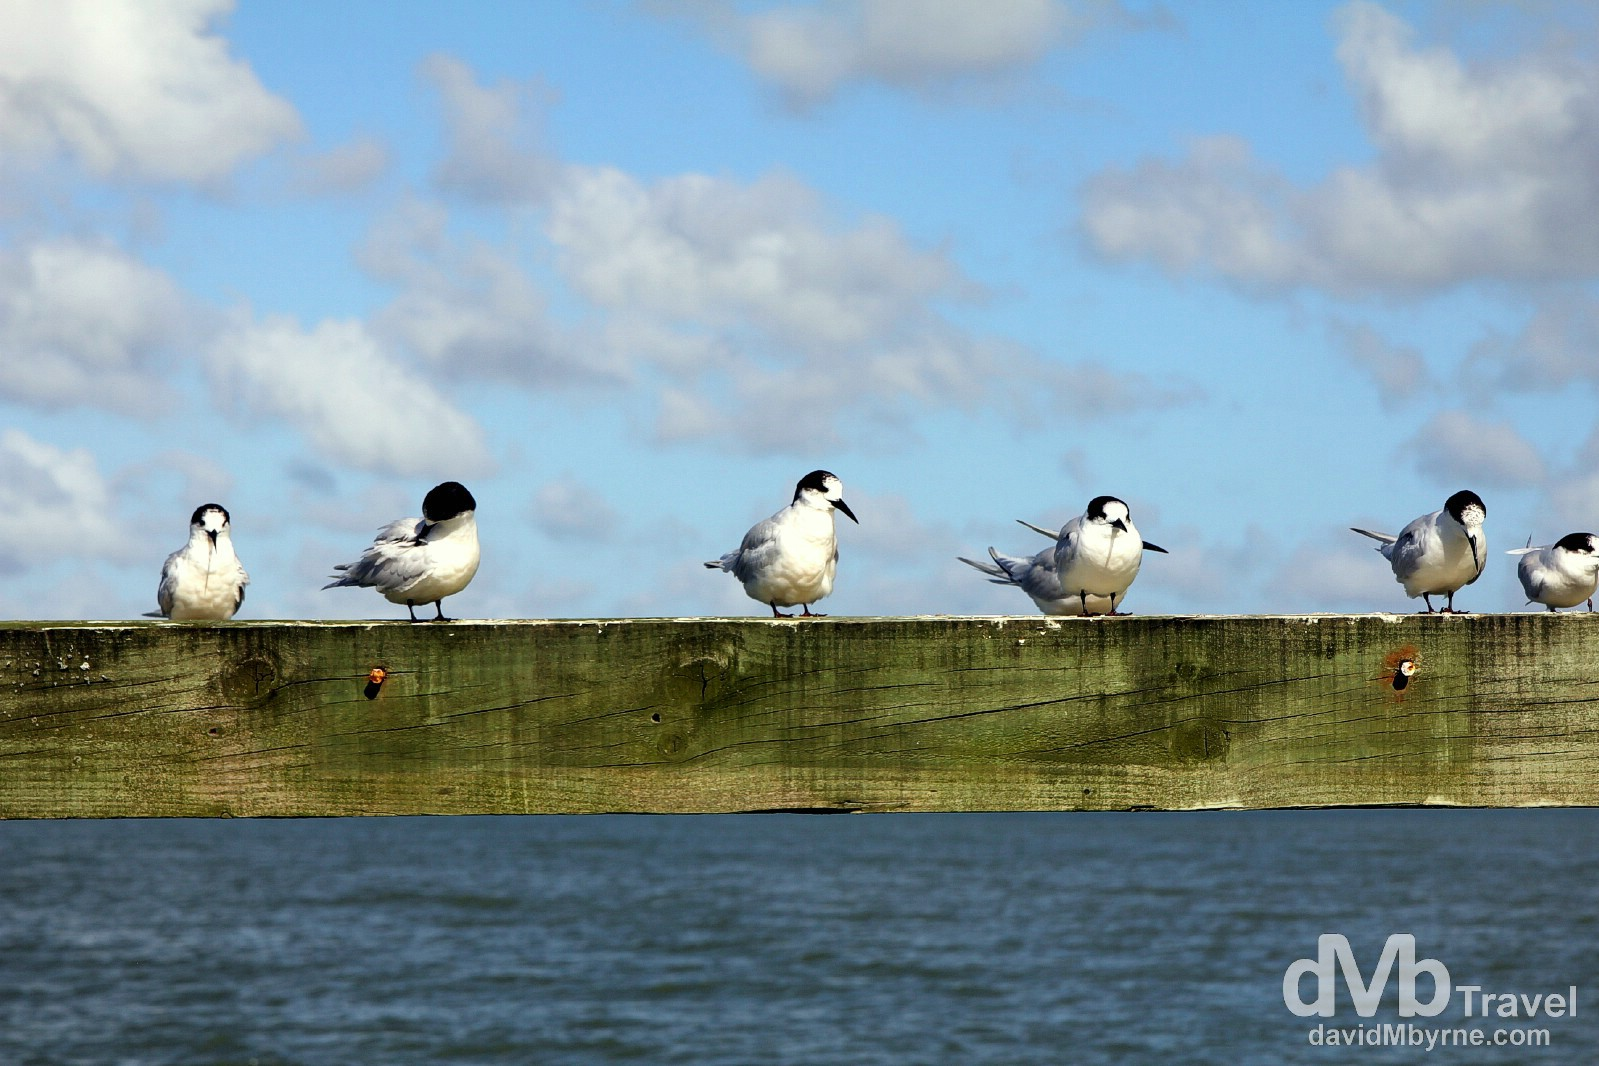 Gulls on the pier at Shelly Beach, North Island, New Zealand. April 27th 2012.